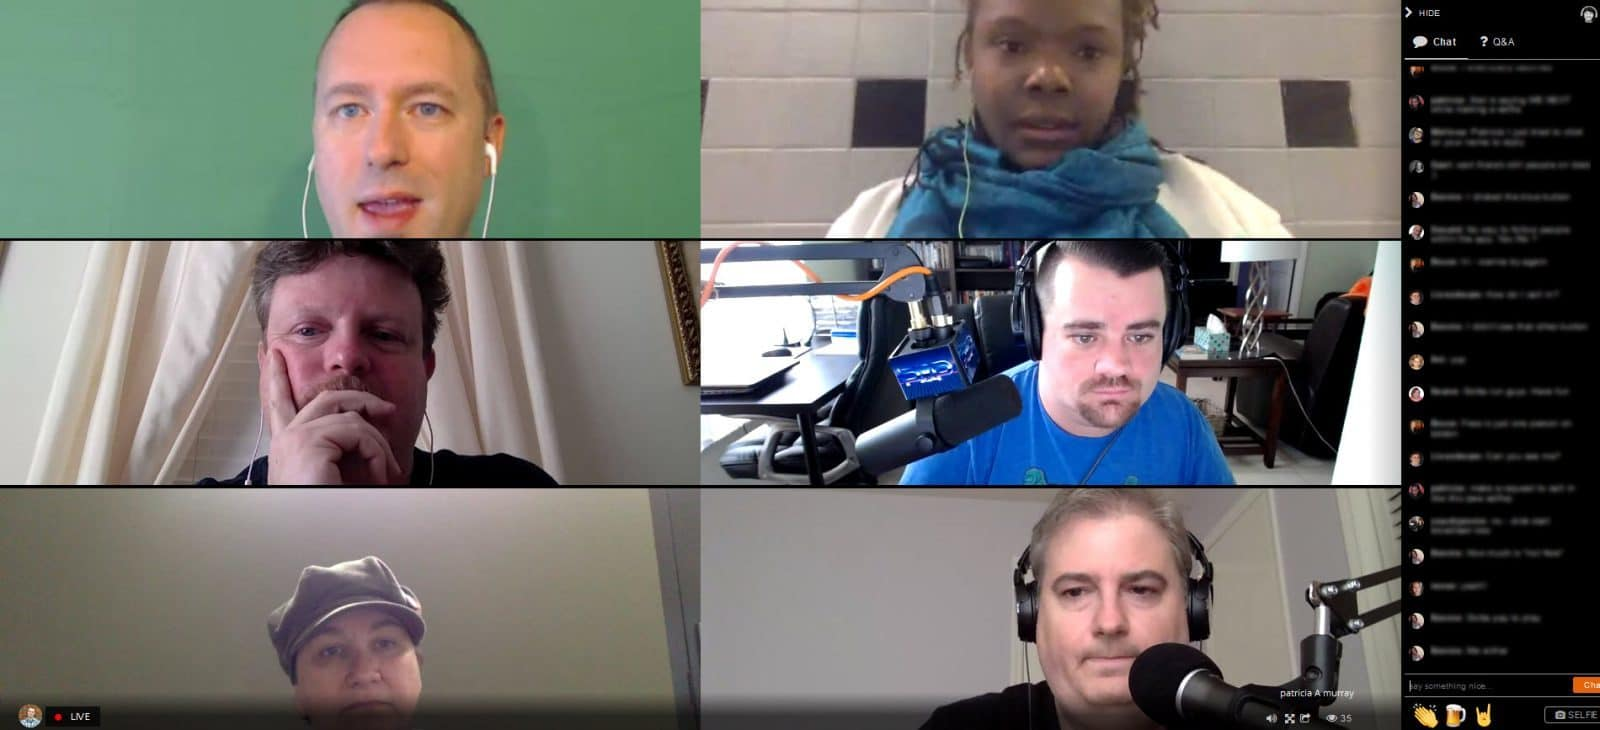 How to live stream with Huzza - the audience view when you have six people in a live stream aslo seeing the comments